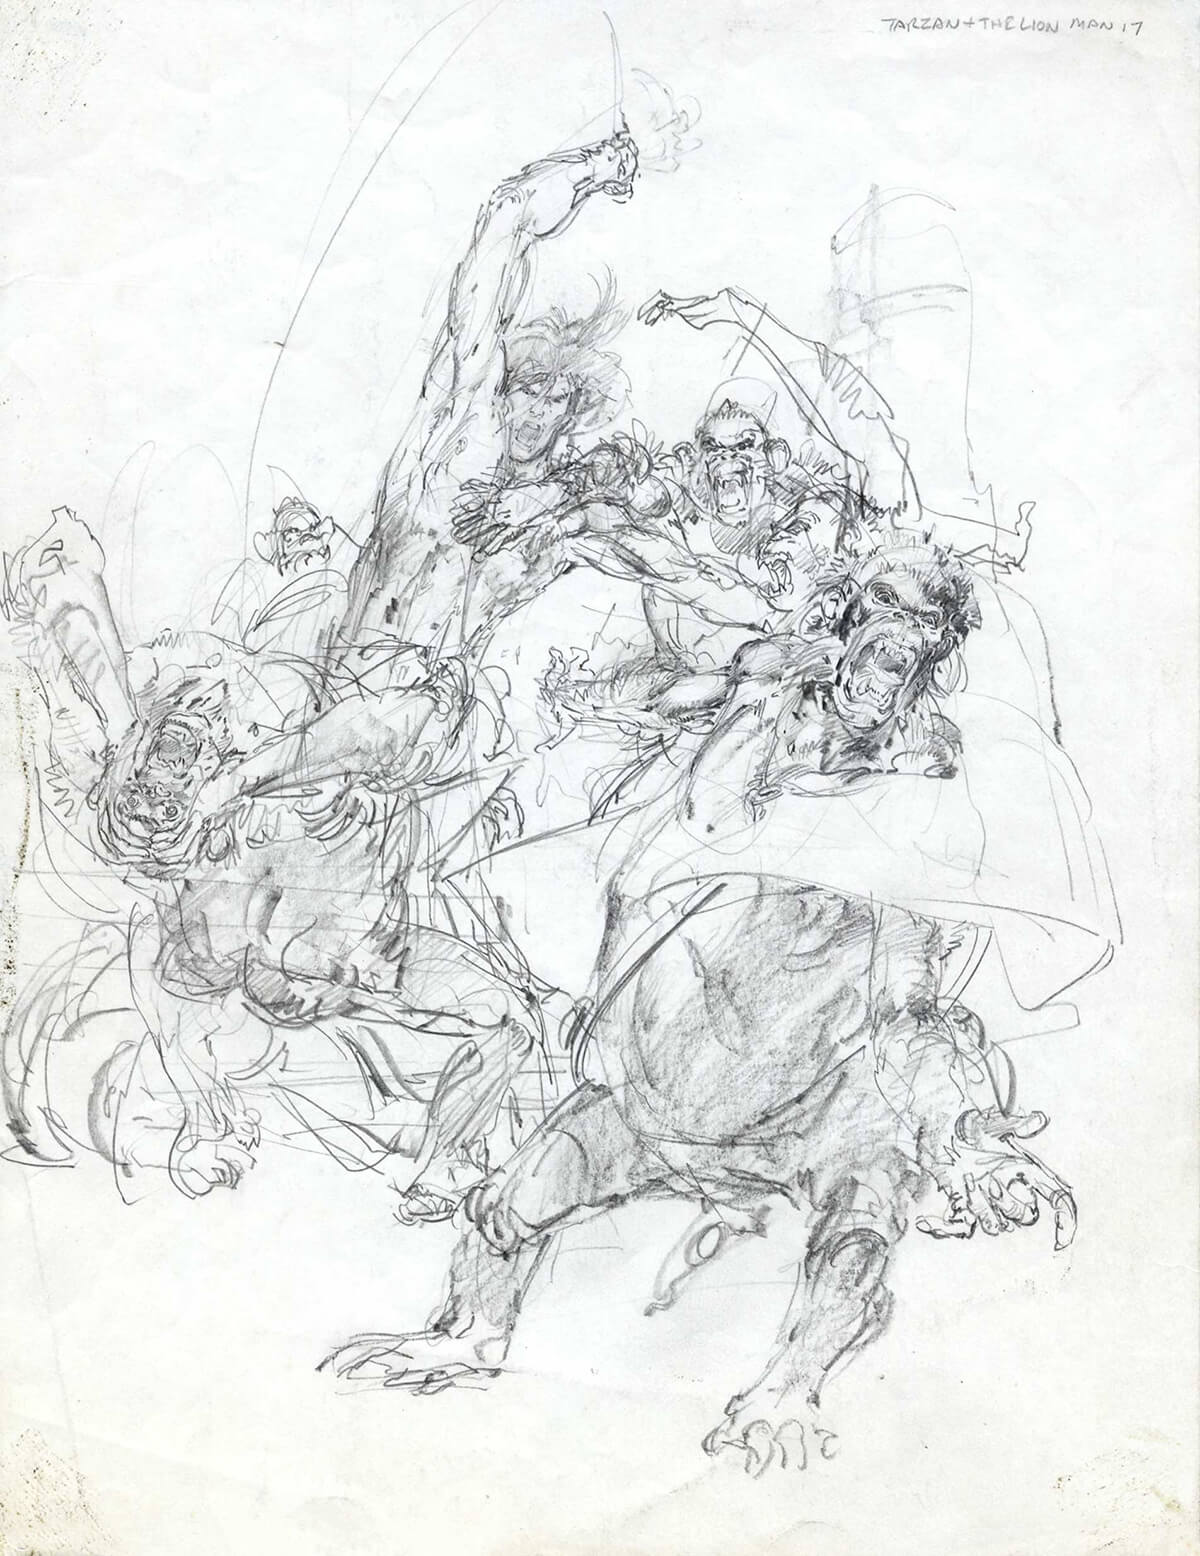 Neal Adams 17 Tarzan And The Lion Man Rough